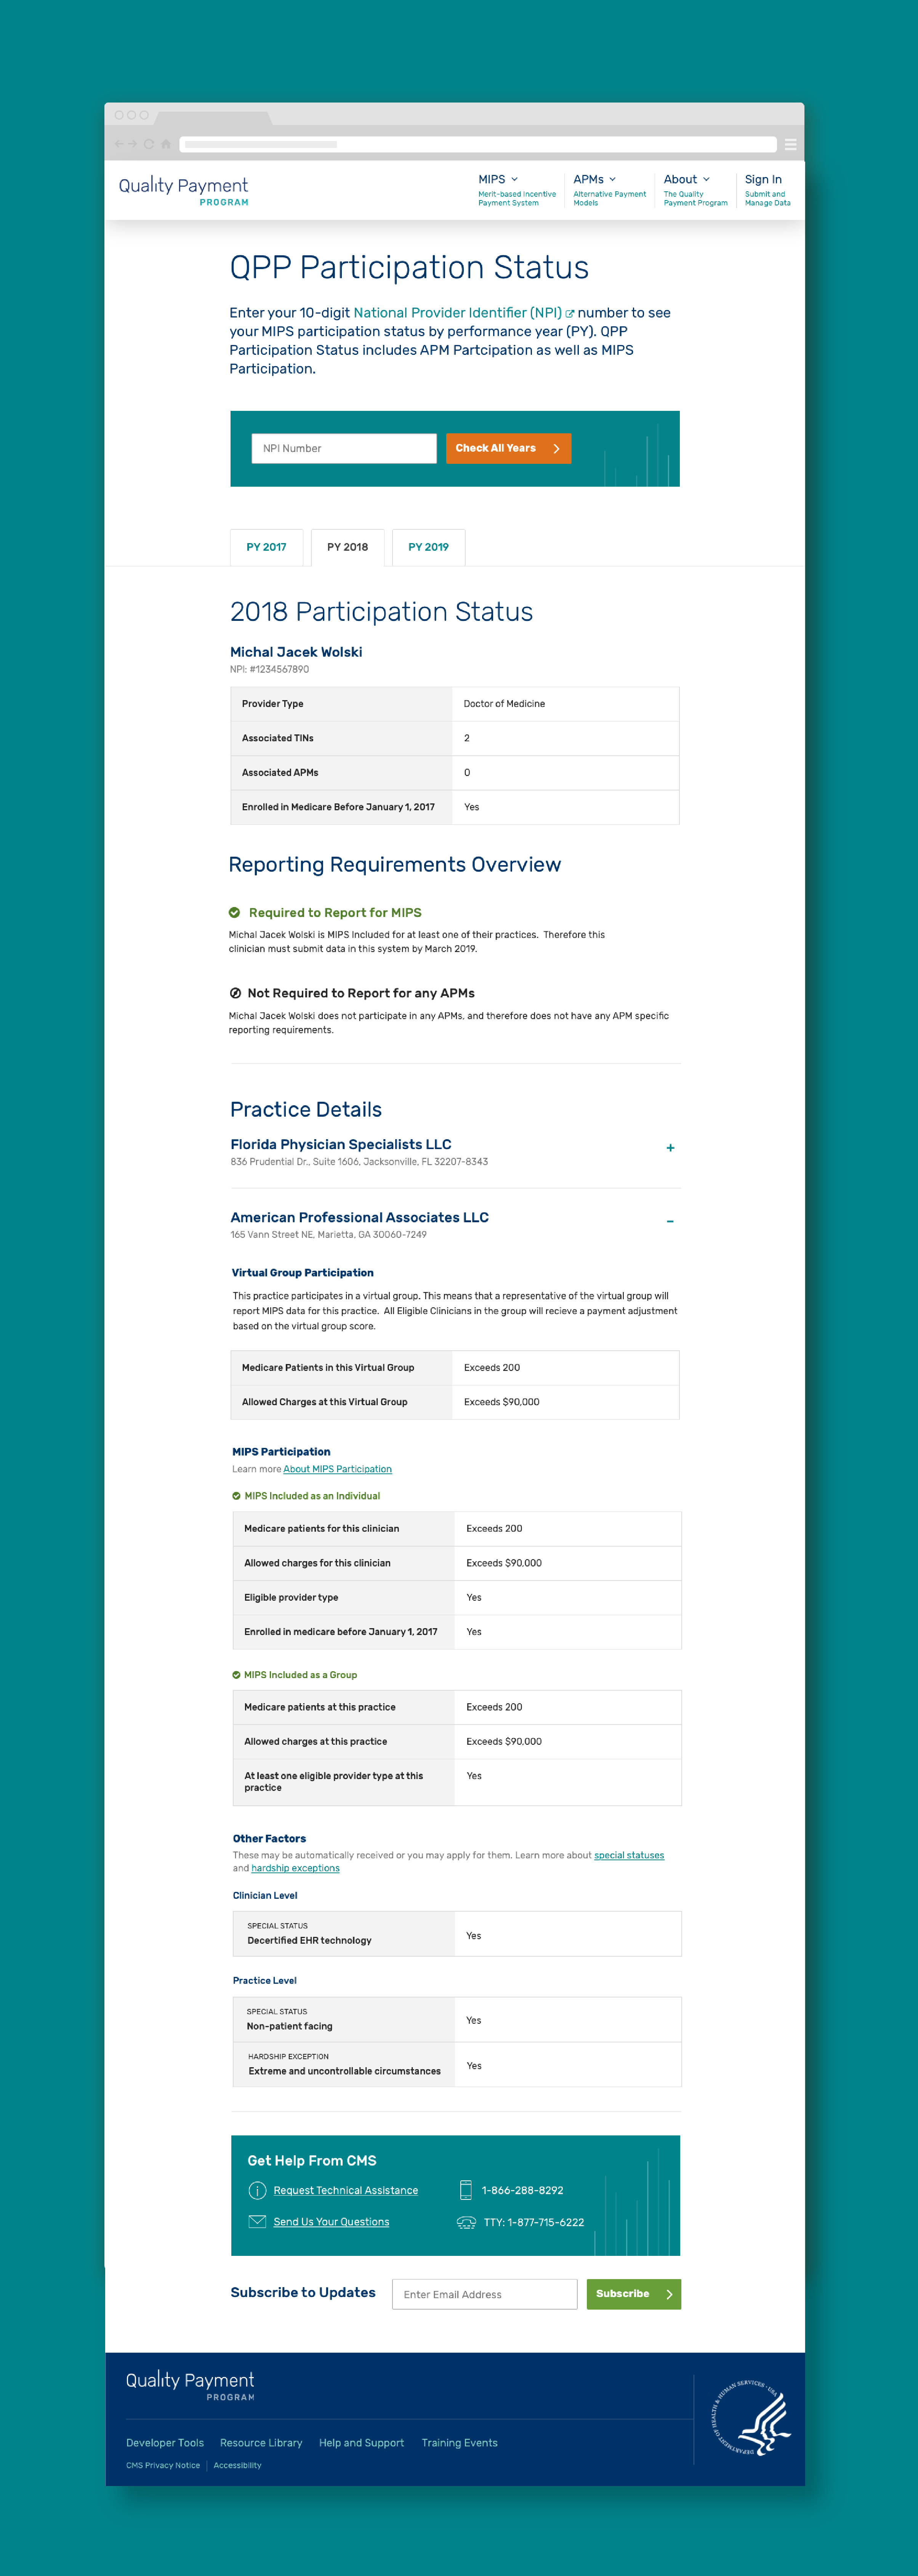 This entire website and tool can be very convoluted and try to convey too much or too little at a time. The users are submitting data that highly impacts the value of their practice and how they look to their patients and clients so being able to find the balance of what do they need to know on this page vs what becomes too much or what are we missing are questions we've asked ourselves through the entire process.